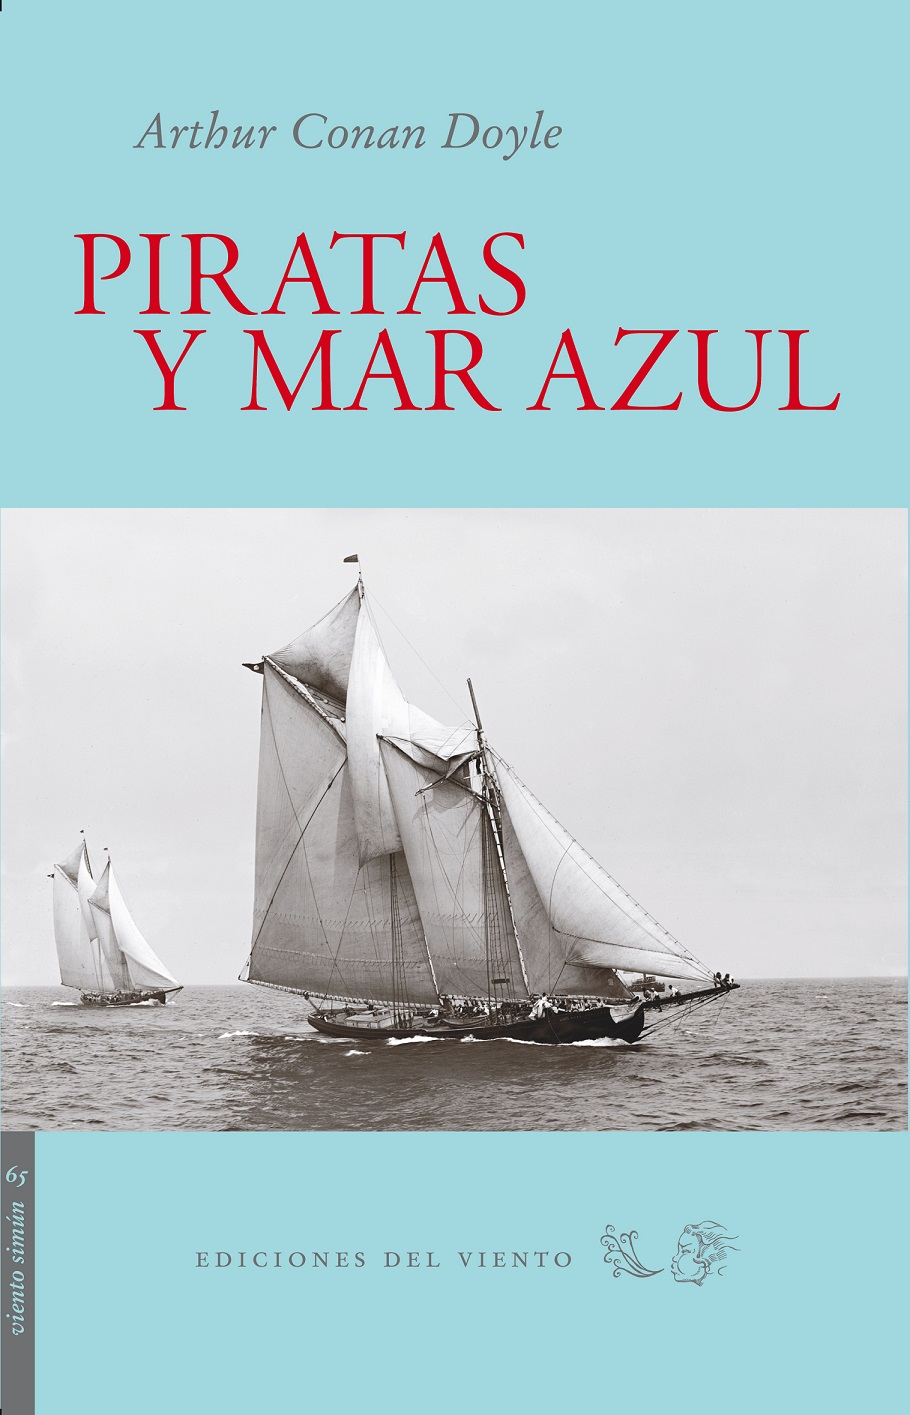 Piratas y mar azul